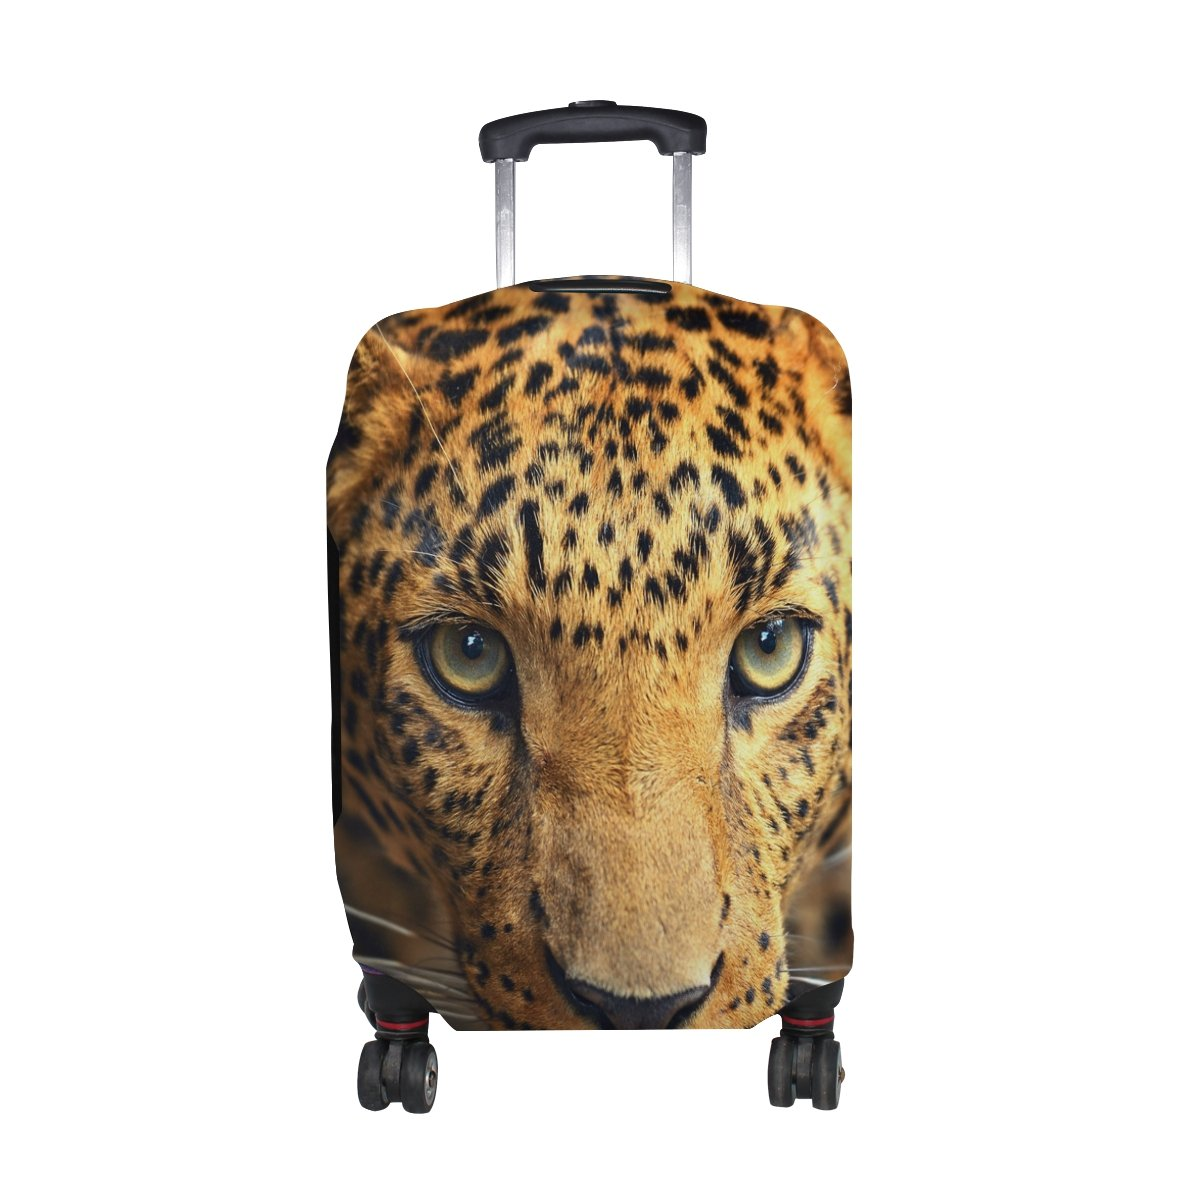 Leopard Pattern Print Luggage Cover Travel Suitcase Protector Fits 29-32 Inch Luggage